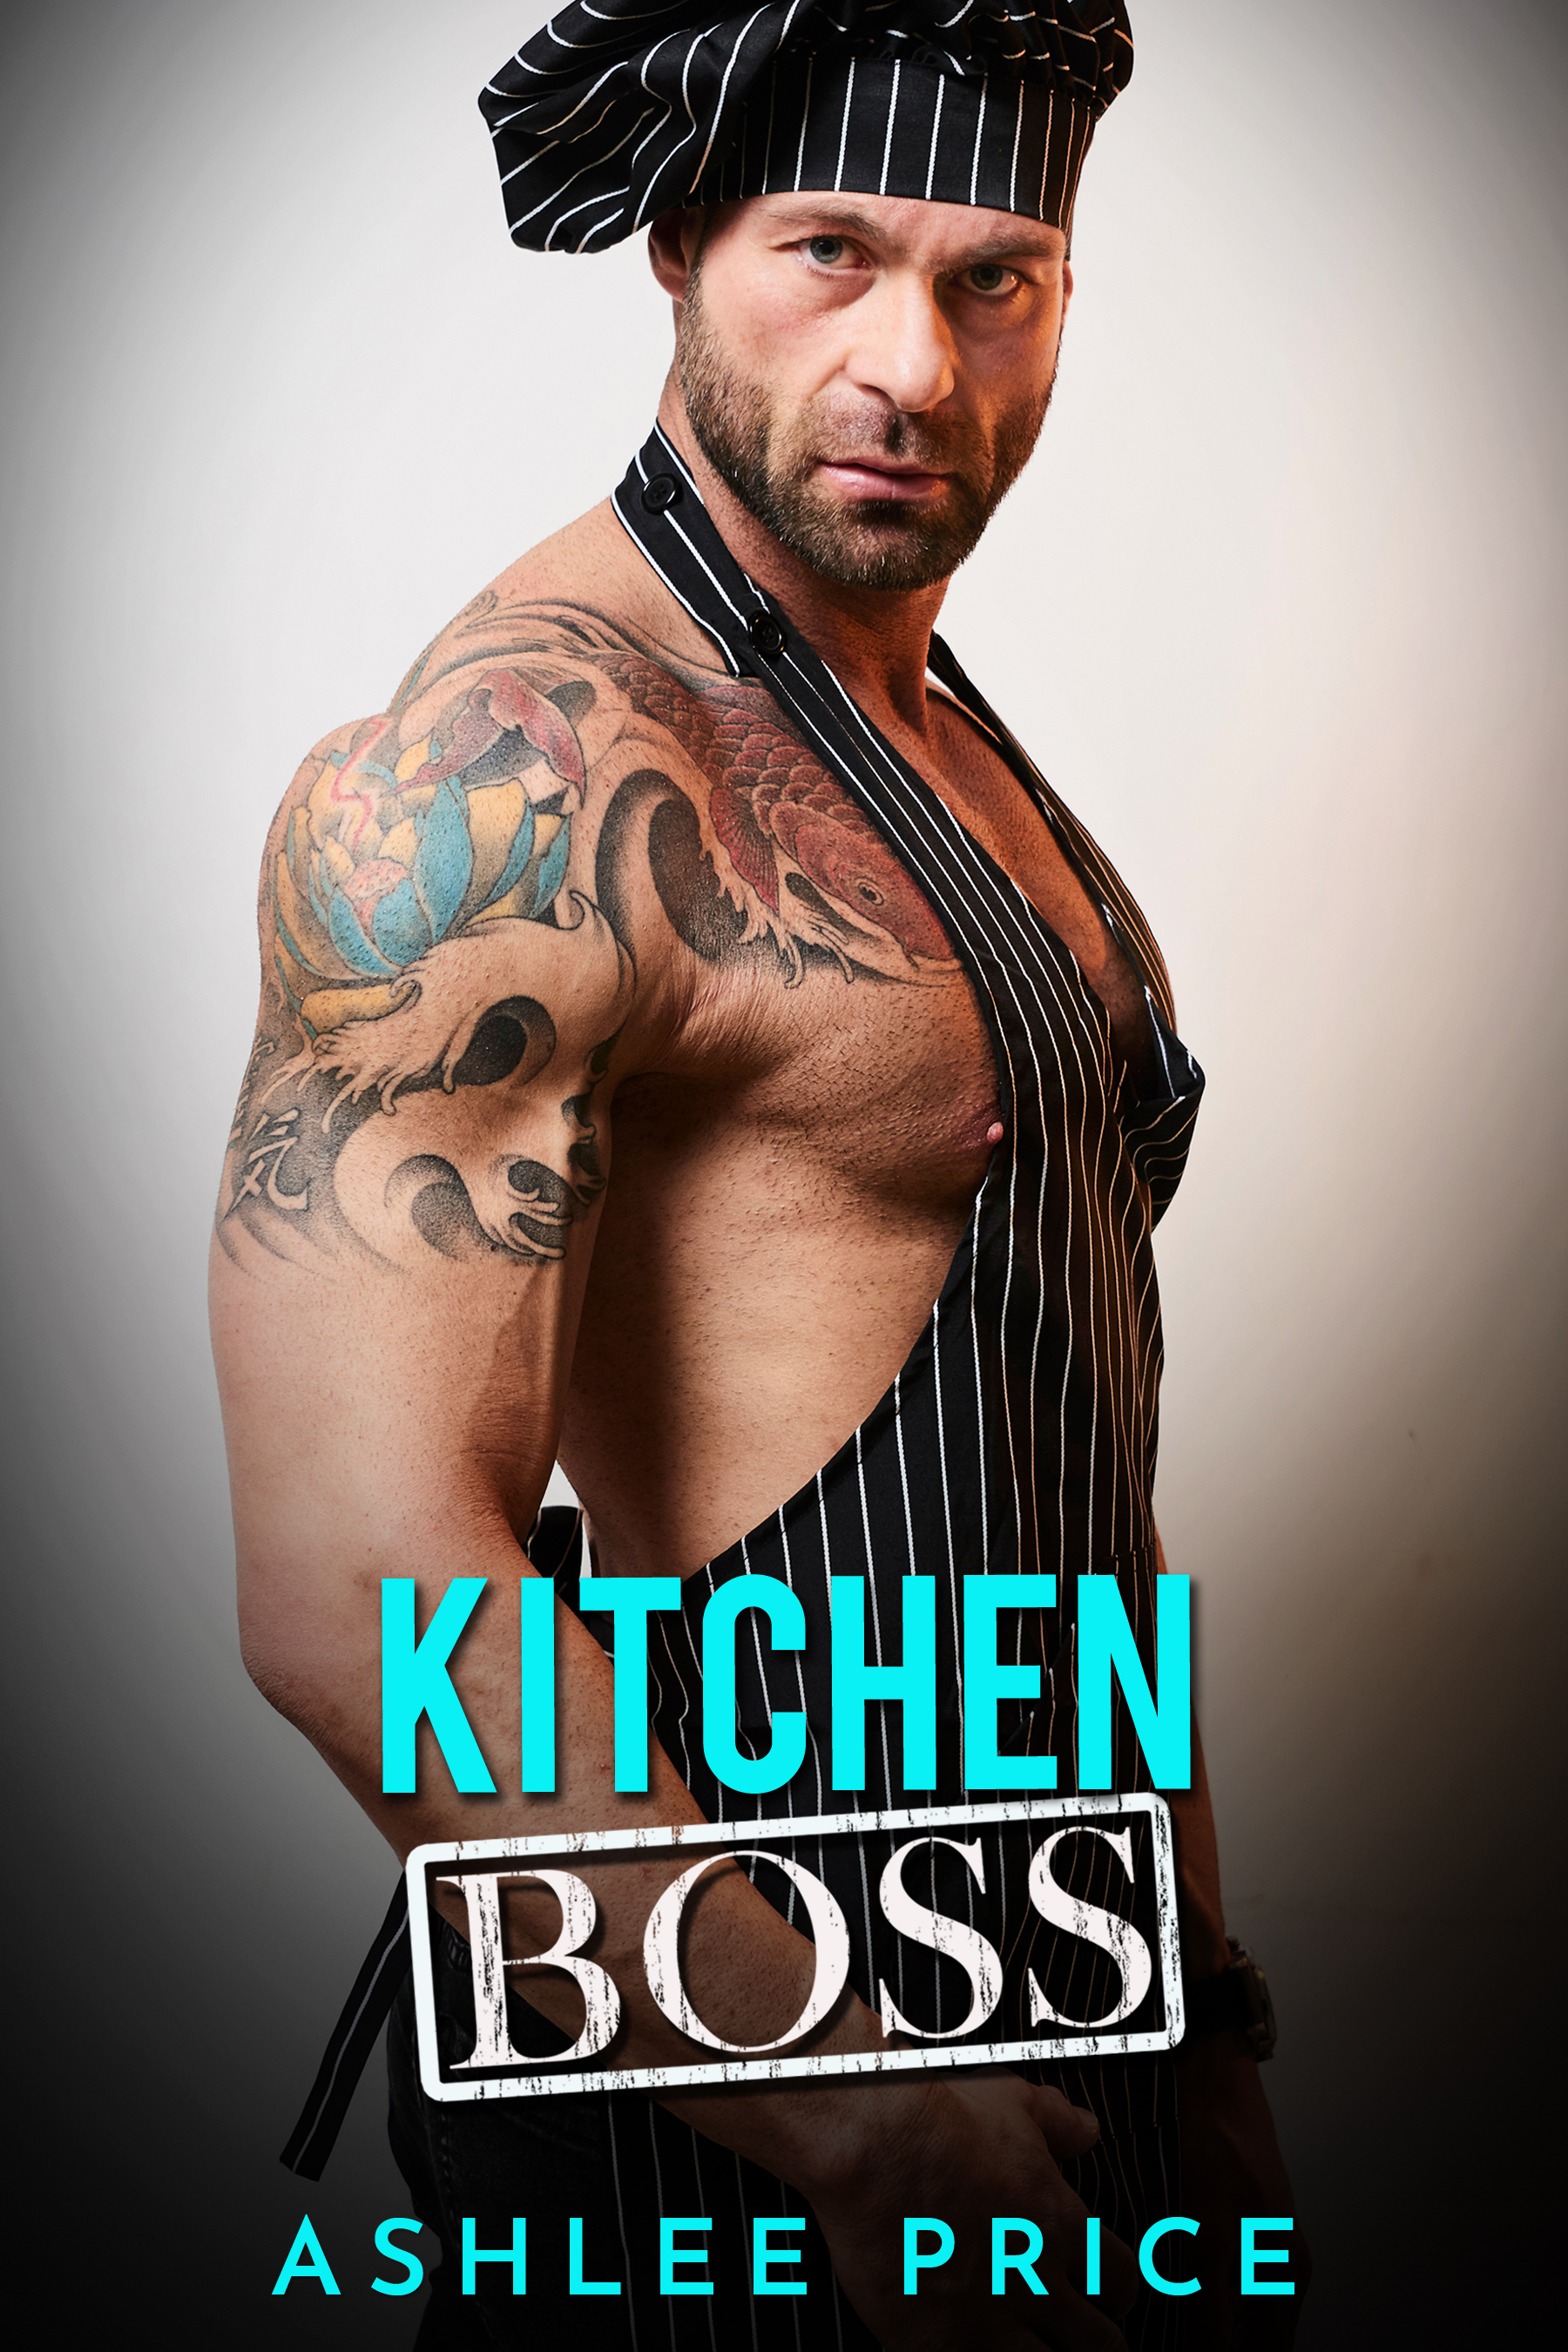 Kitchen Boss Final Front Cover.jpg